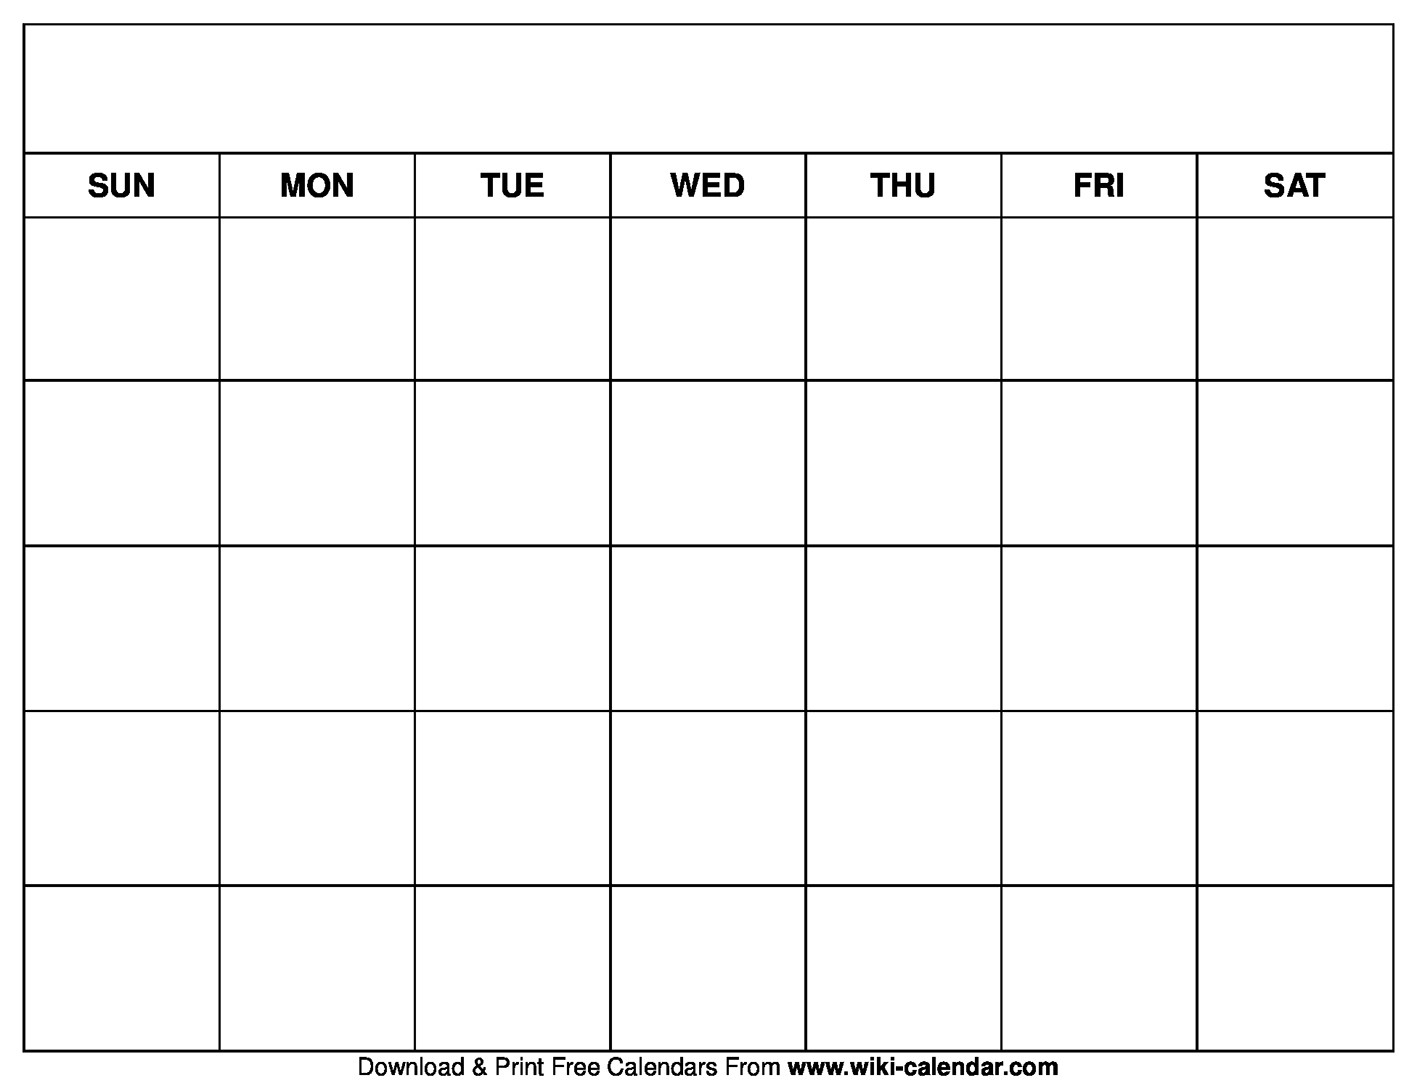 Printable Blank Calendar Templates-Printable Blank Calendar Template With Notes